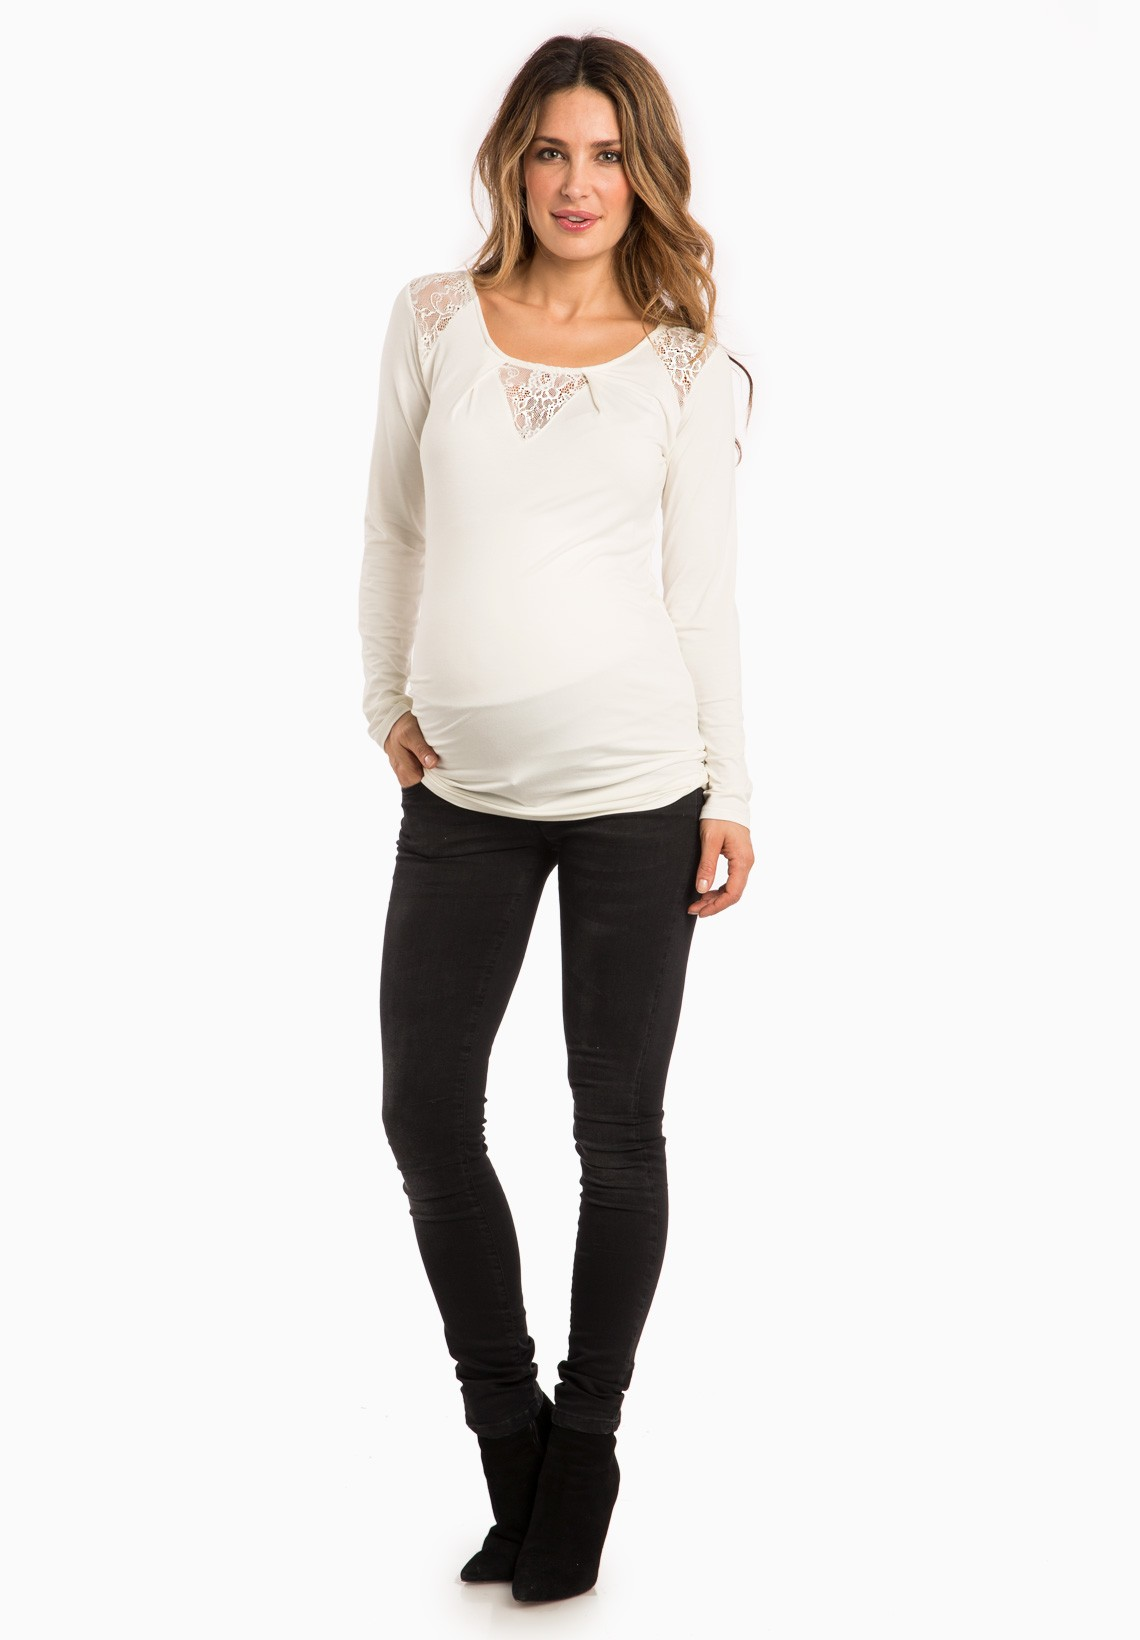 Rent stylish maternity clothes from Le Tote today! We carry top maternity fashion brands so that you can stay with the latest trends and rock that baby bump. Plus, we'll make your life easier and worry about the dirty laundry for you.